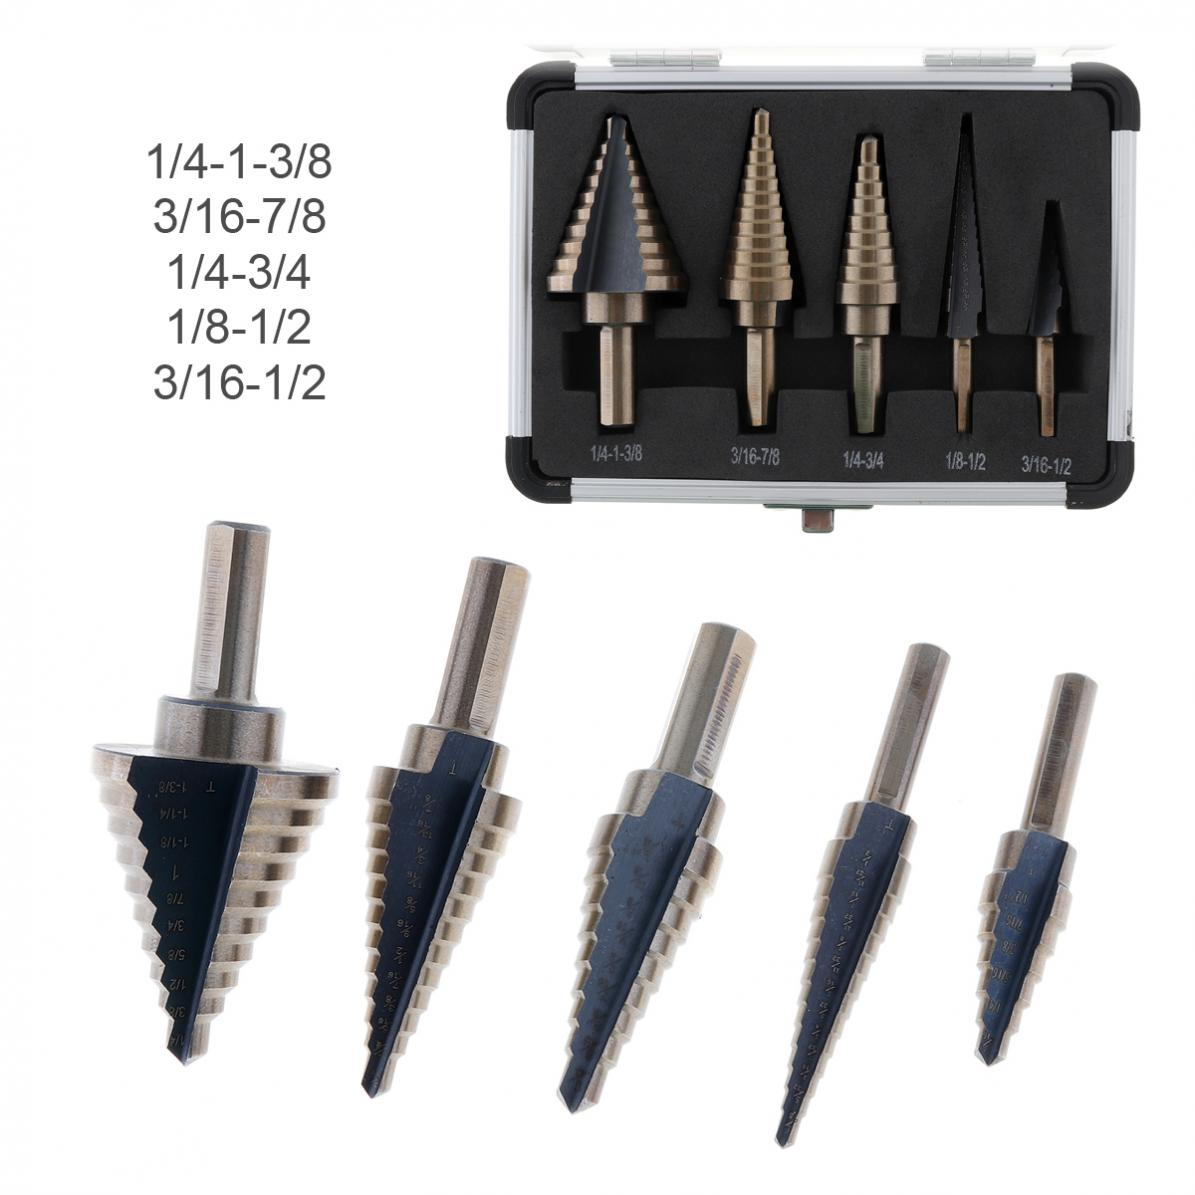 5pcs HSS Steel Step Drill Bit Set Cone Spiral Grooved Drill Bits Multiple Hole of 1/4-1-3/8 3/16-7/8 1/4-3/4 1/8-1/2 3/16-1/2 moleca moleca mo001awhgx13